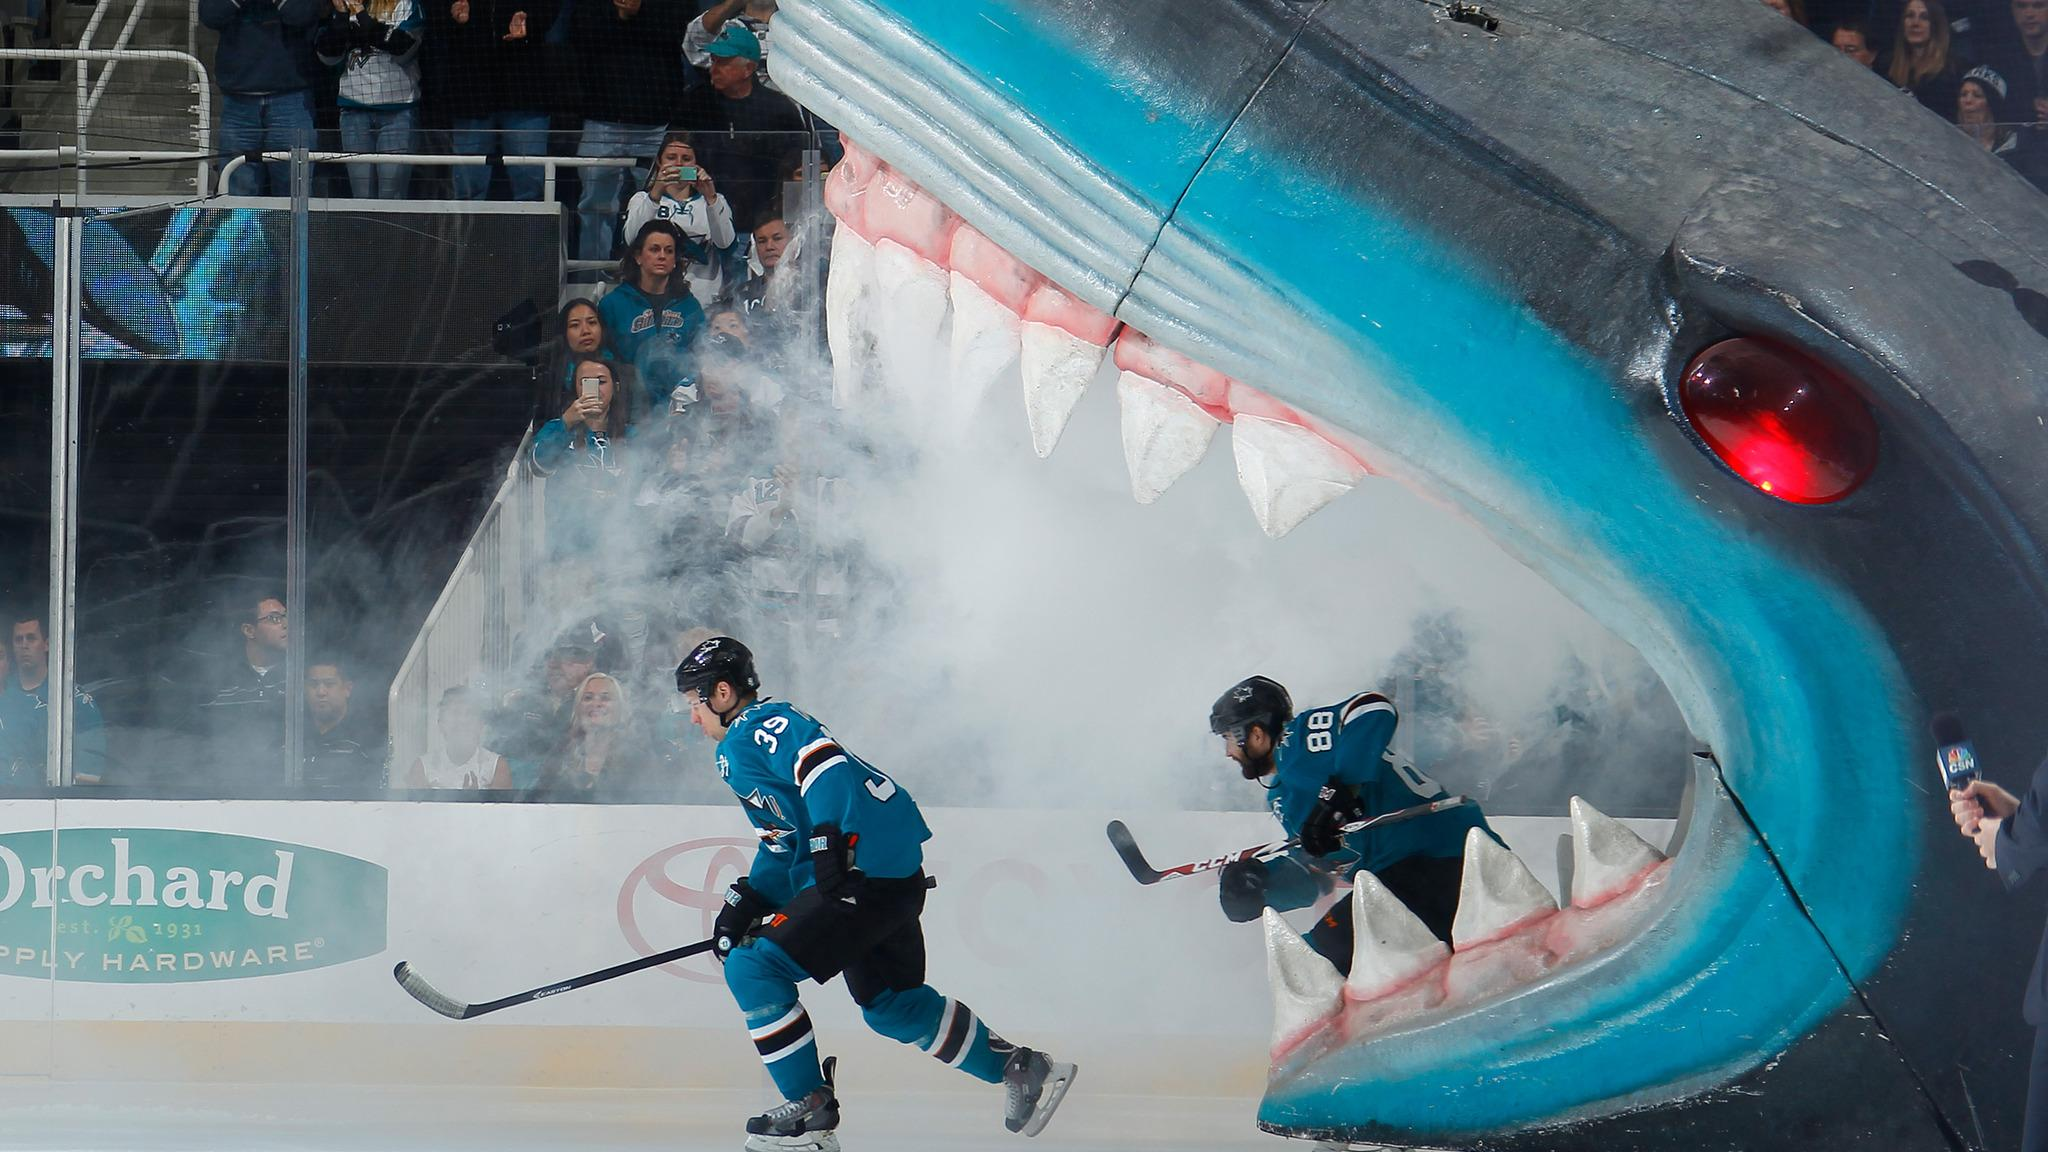 San Jose Sharks vs. Columbus Blue Jackets